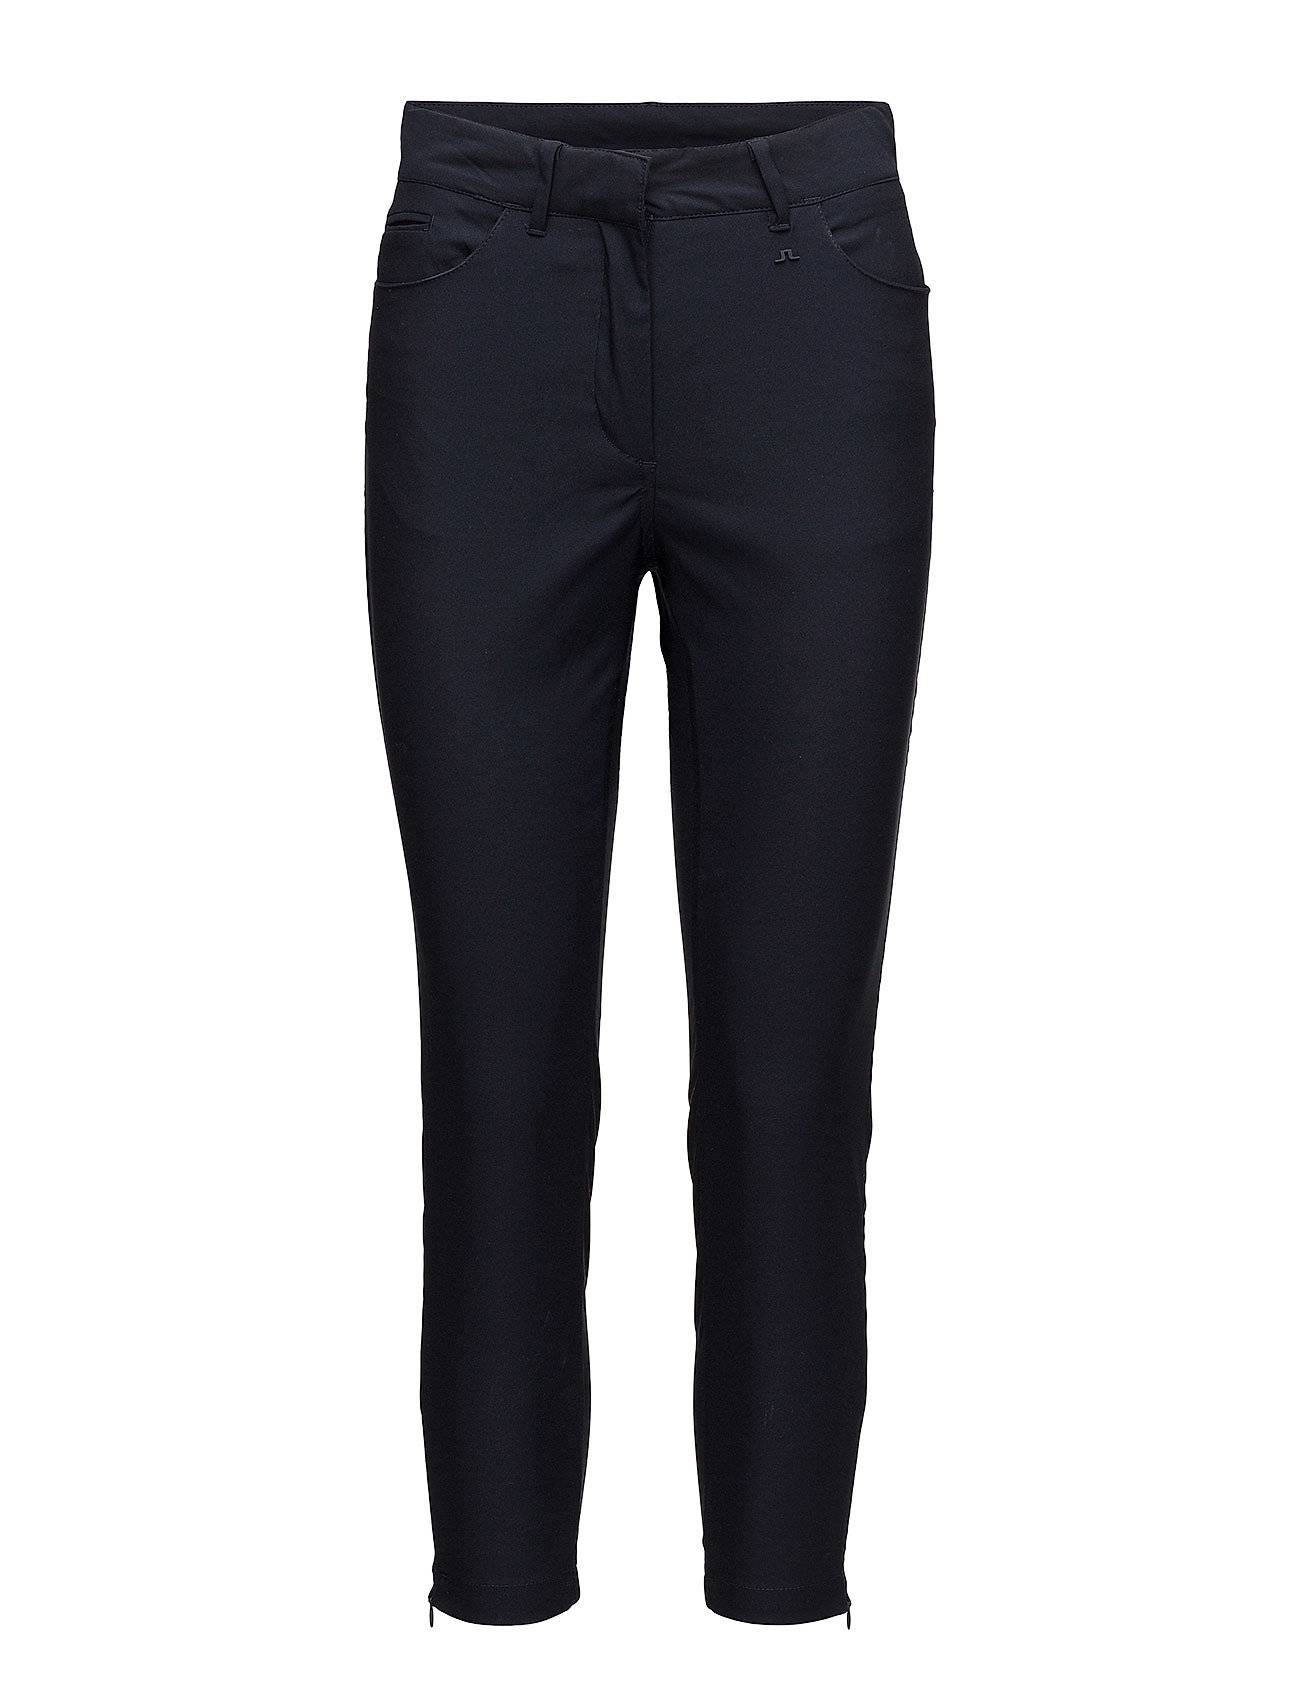 J. Lindeberg Golf W Janni Pant Schoeller 3xdry